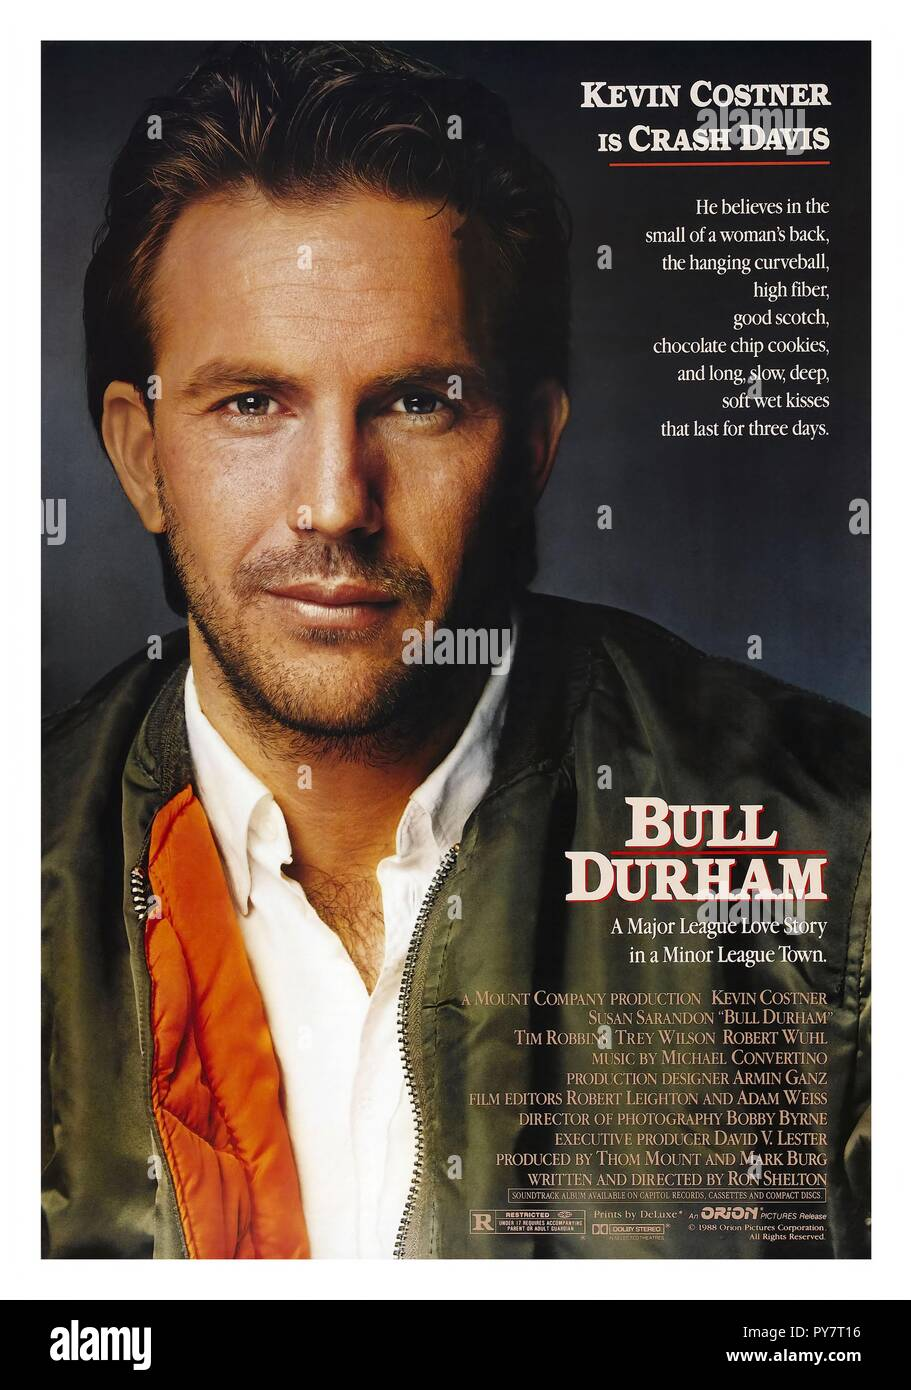 Original film title: BULL DURHAM. English title: BULL DURHAM. Year: 1988. Director: RON SHELTON. Stars: KEVIN COSTNER. Credit: ORION PICTURES / Album - Stock Image